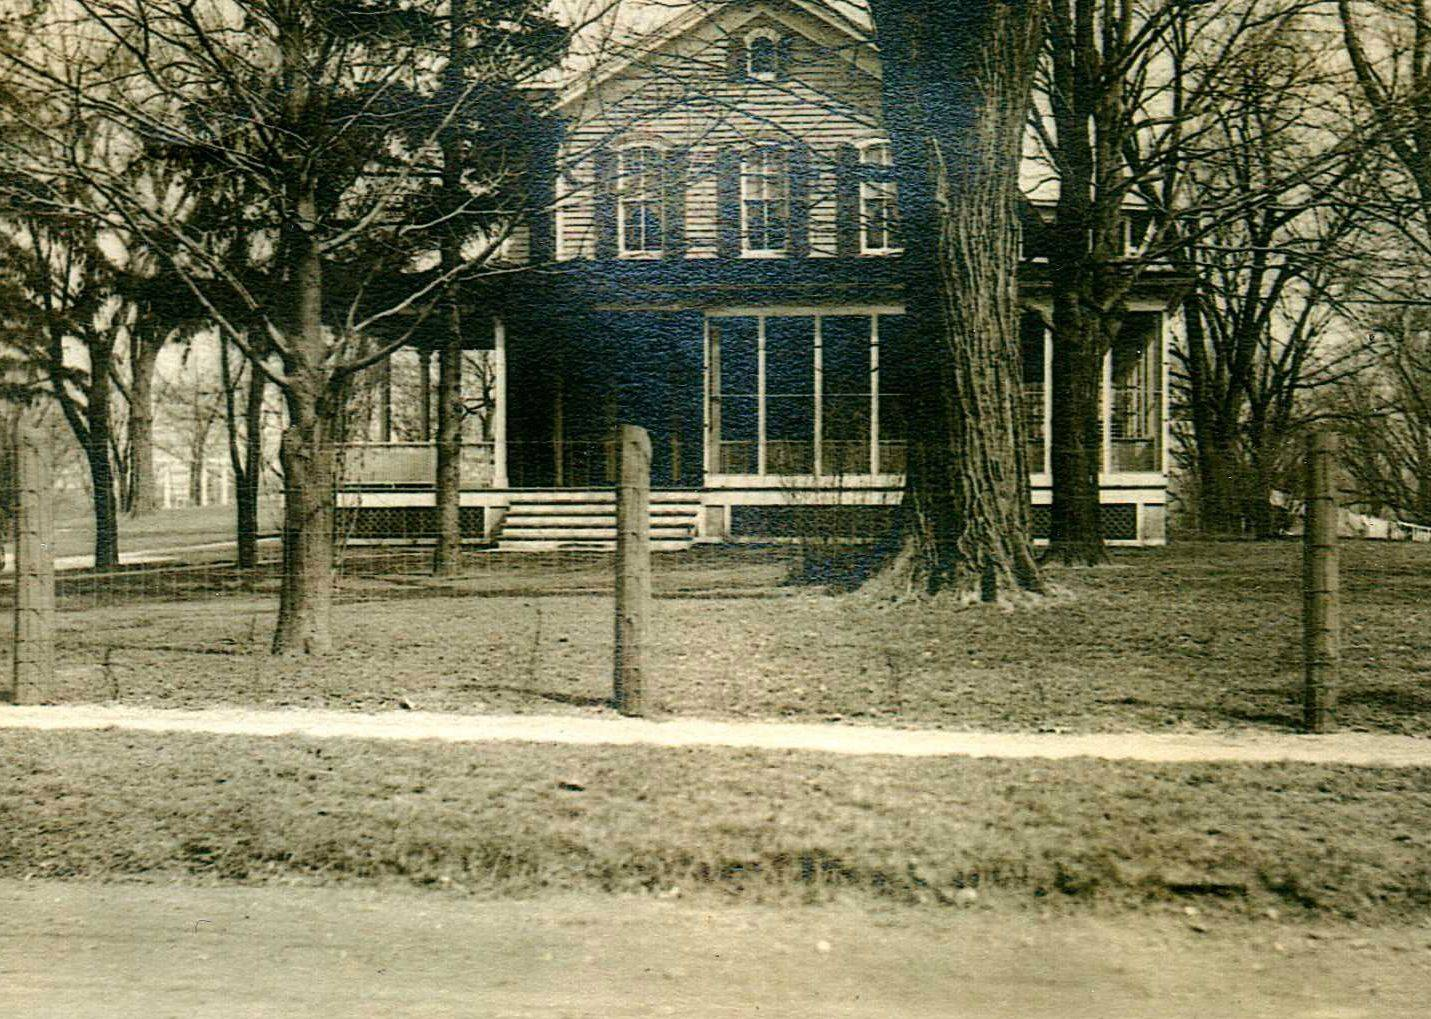 Craig and Donna Ostrye received several old photos of their home from a man in Oregan whose family members once lived there. This photo was taken between 1912 and 1915.